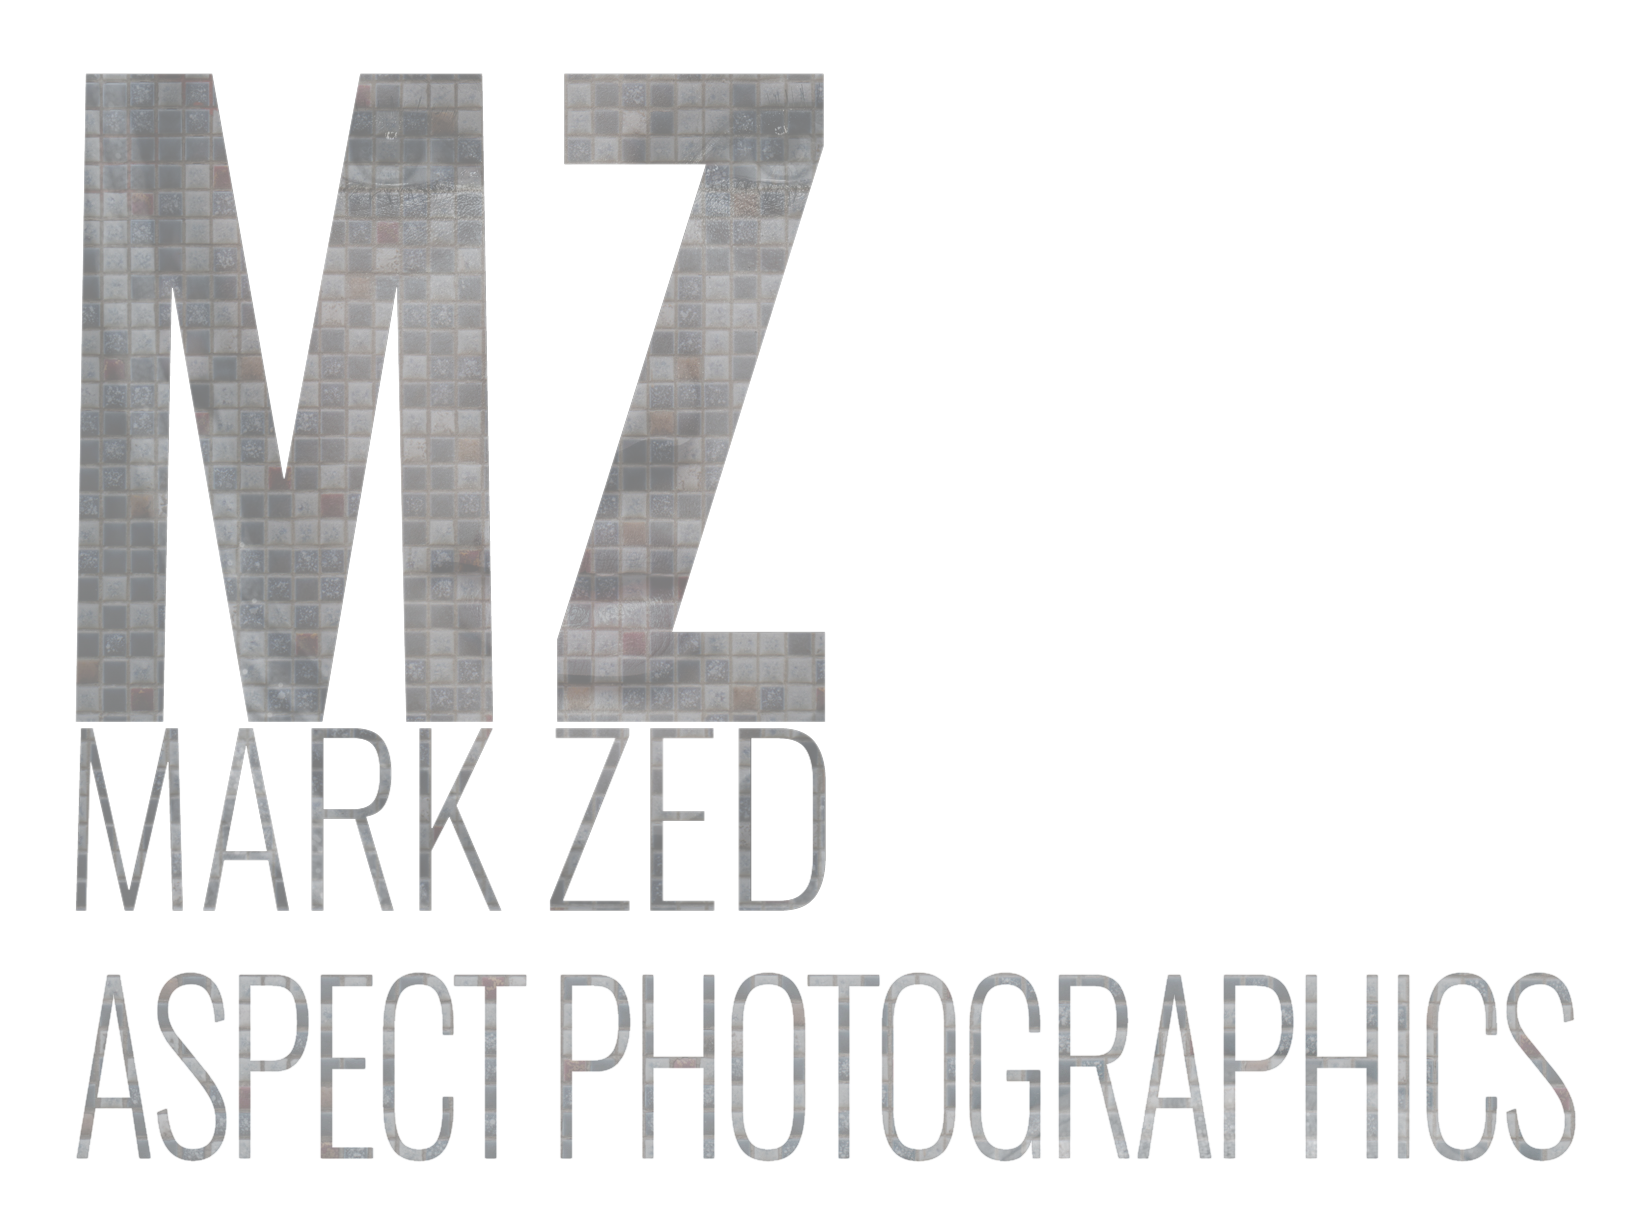 Mark Zed Aspect Photographics